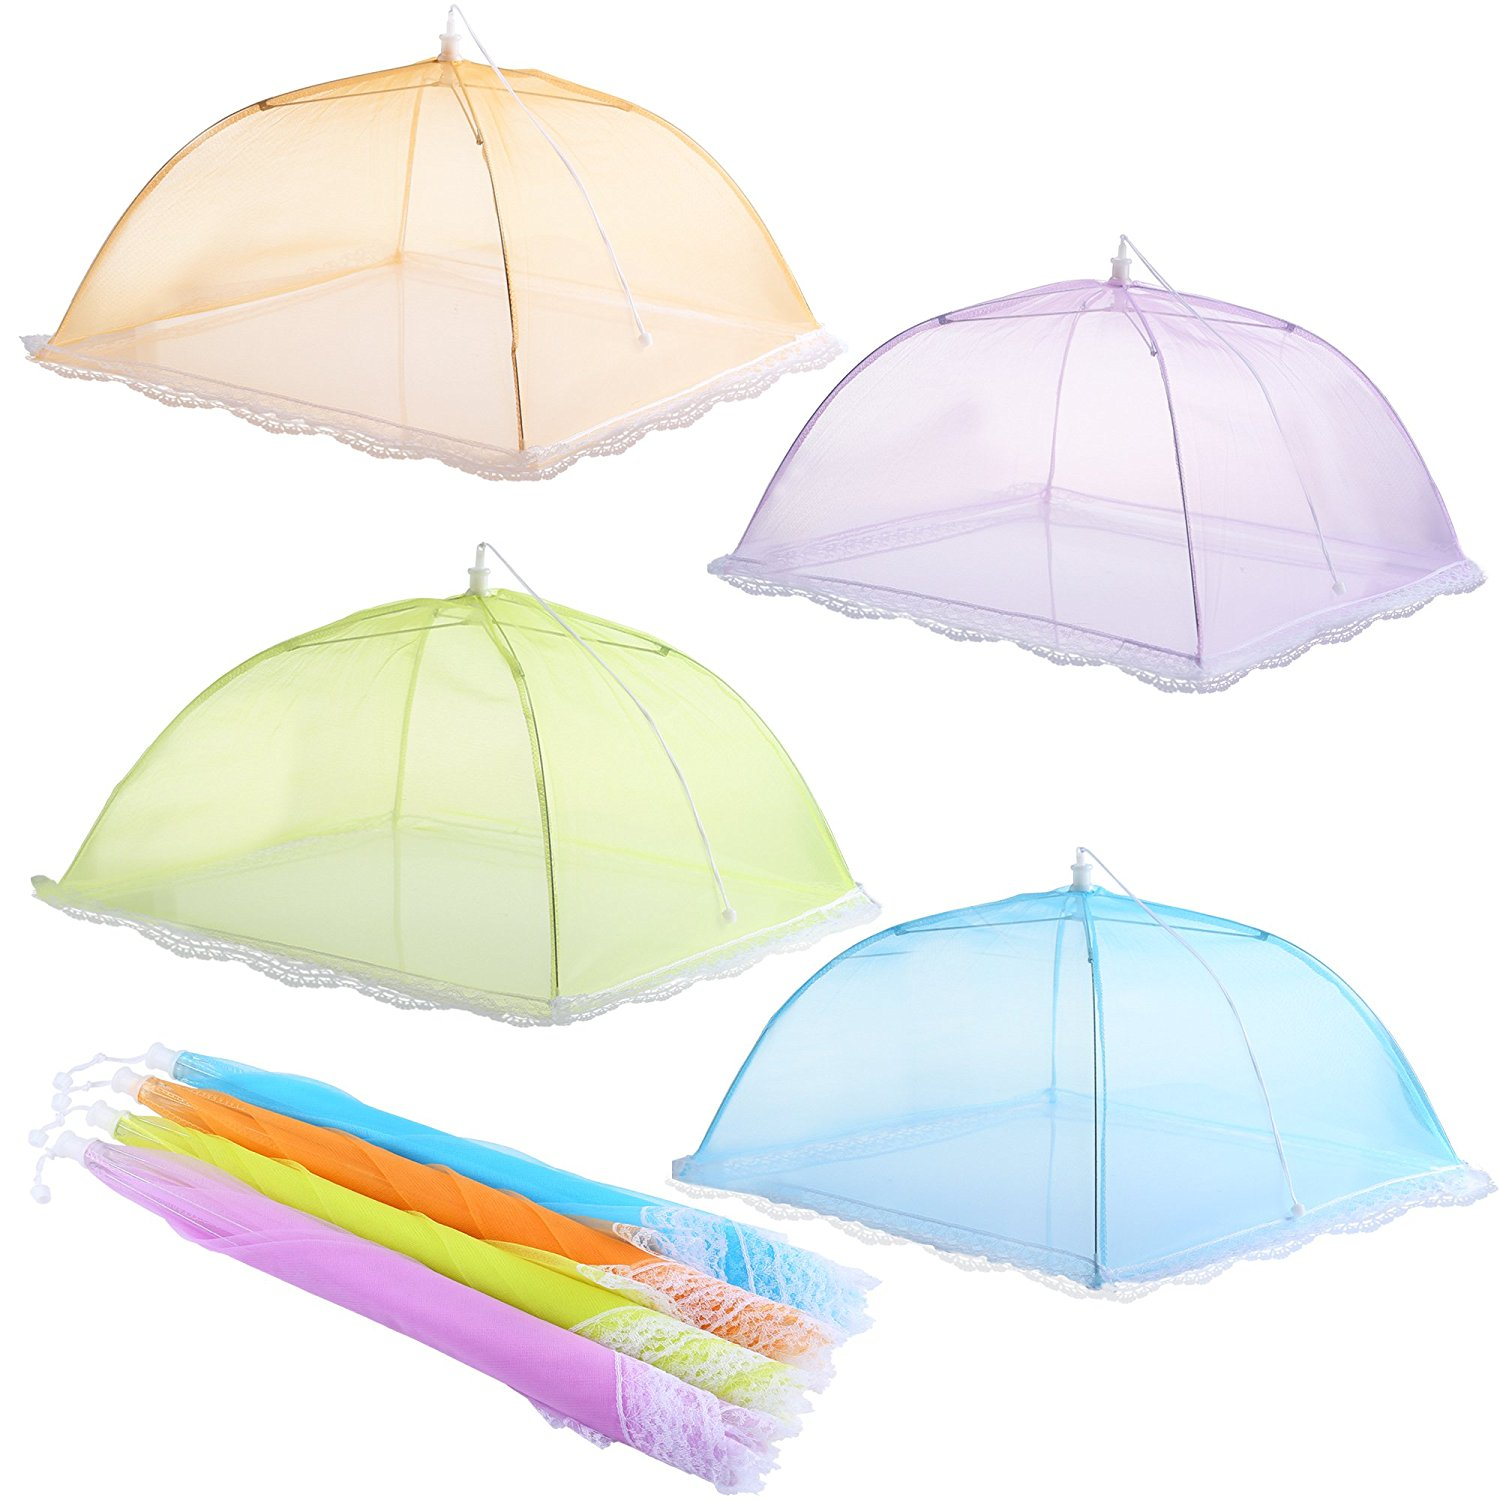 Food Covers IPOW 4-Pack Food Cover Tent Pop-Up Mesh Food  sc 1 st  Walmart & Food Covers IPOW 4-Pack Food Cover Tent Pop-Up Mesh Food Screen ...